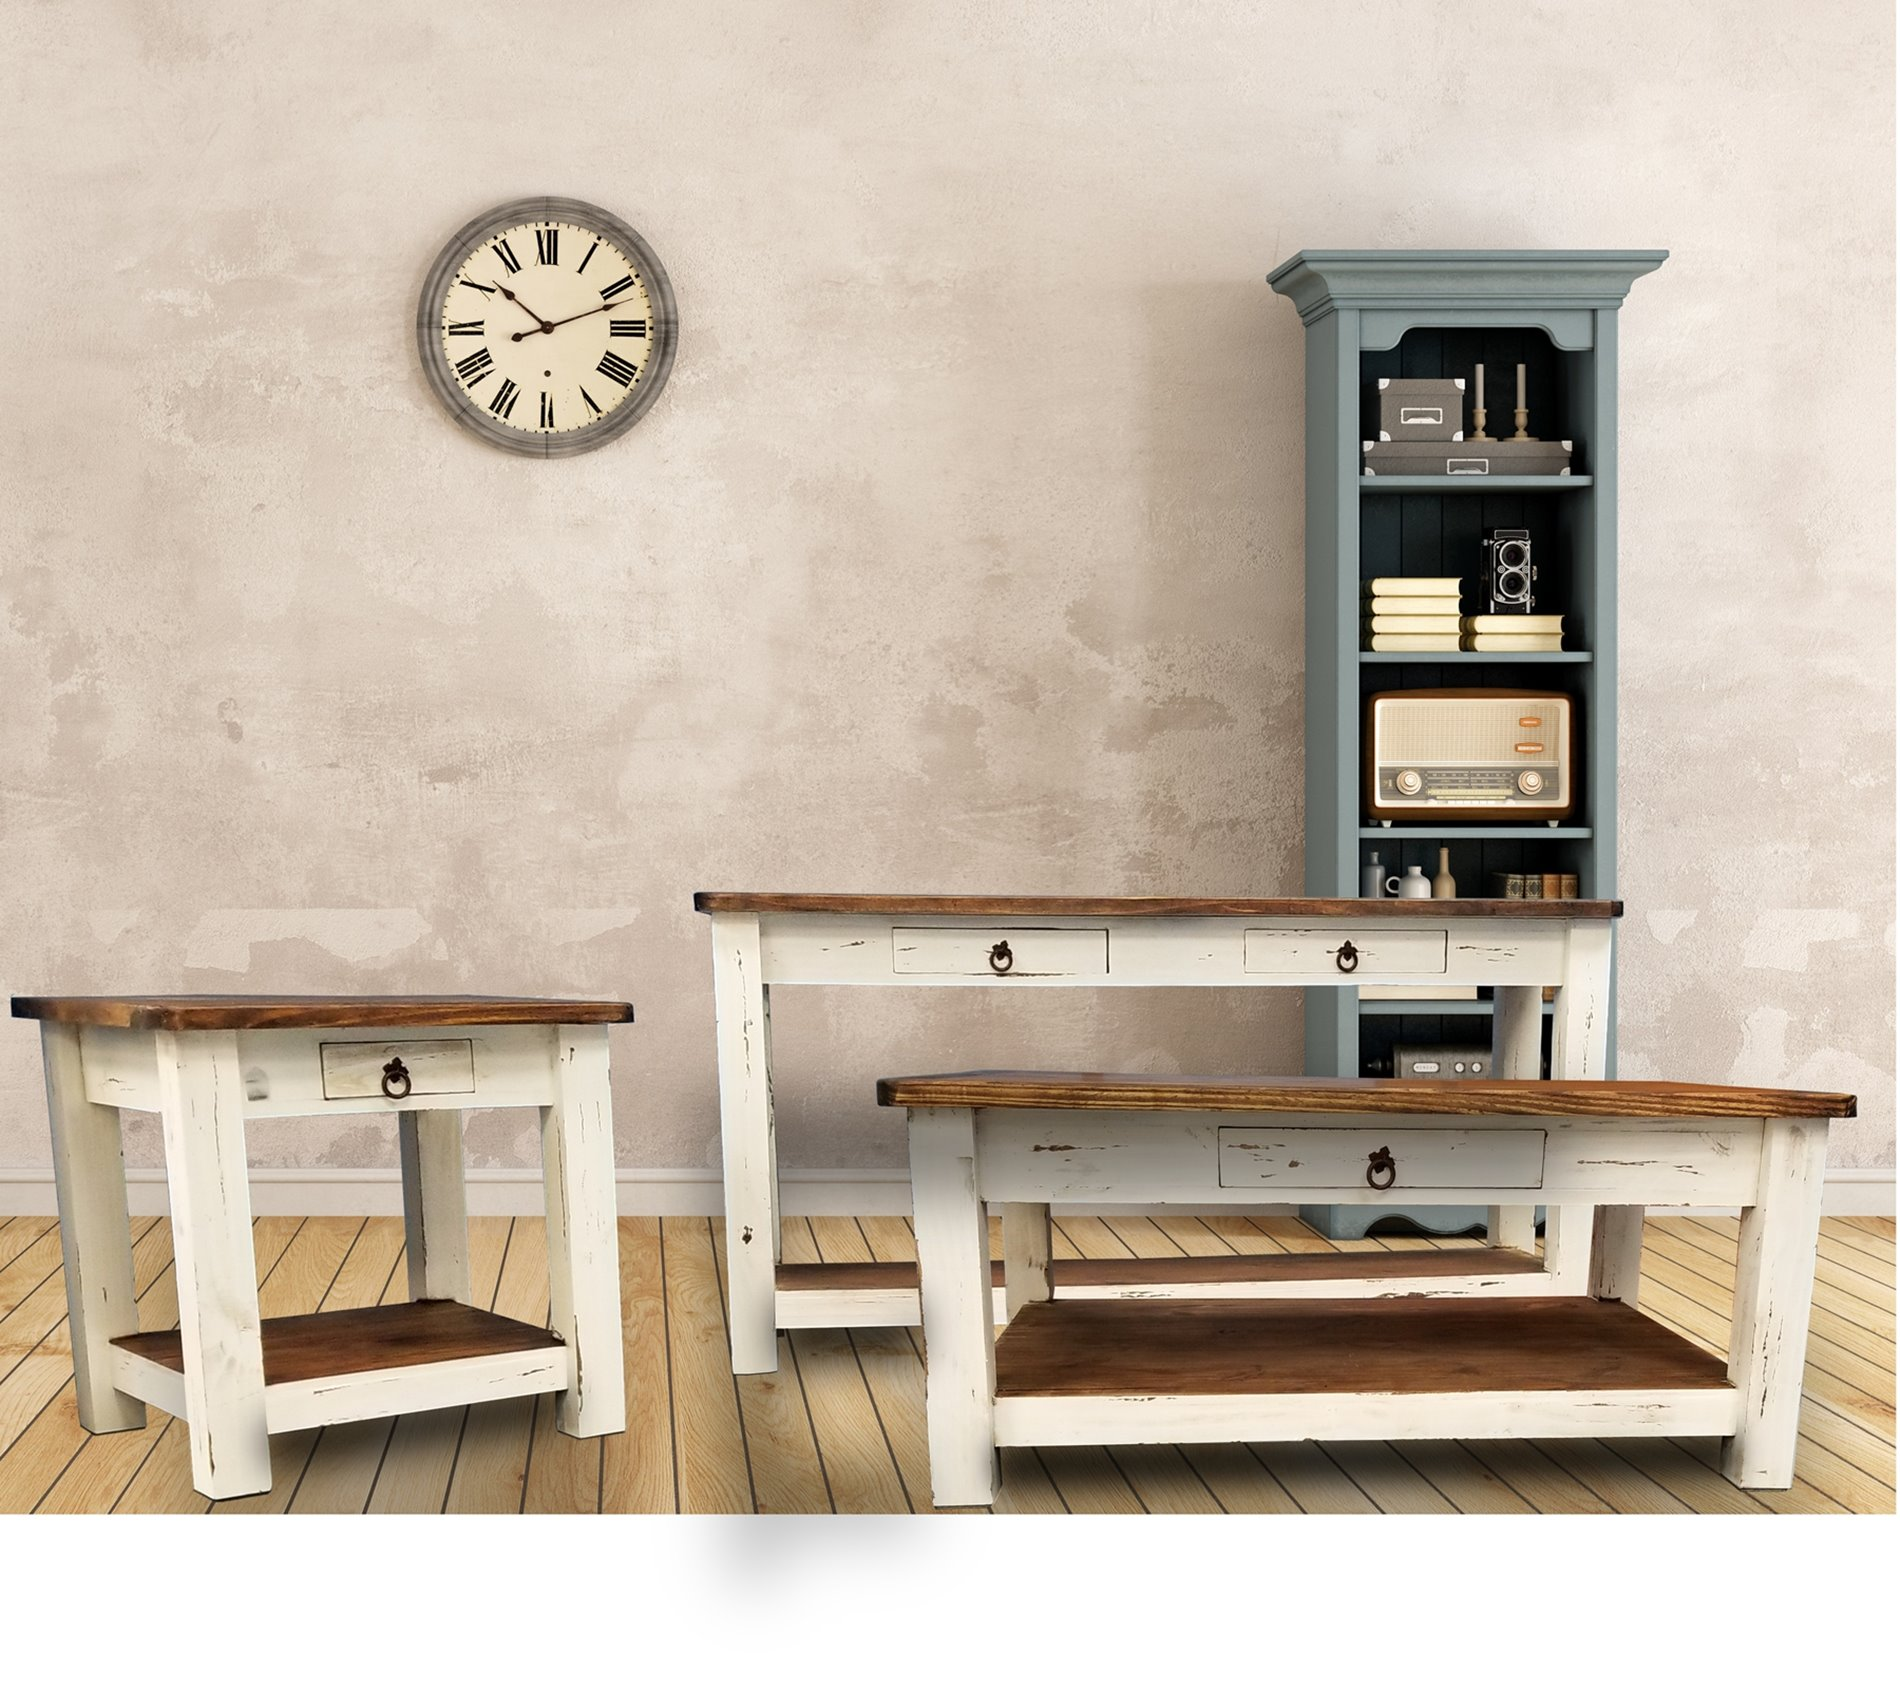 MO-1 White Rustic Tables